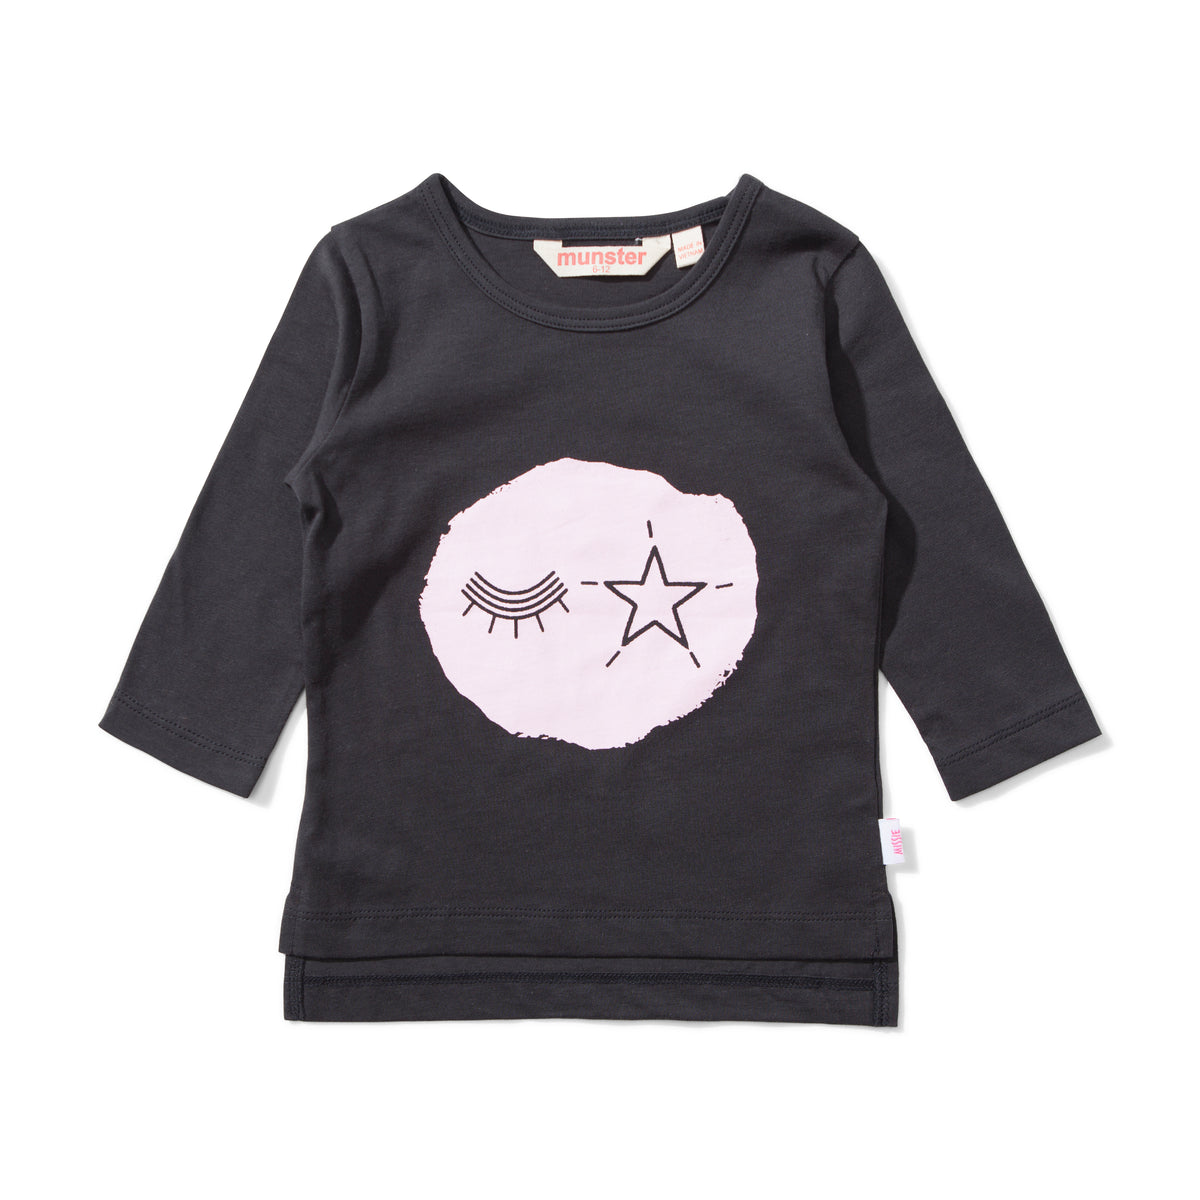 Wink Star Long Sleeve Tee